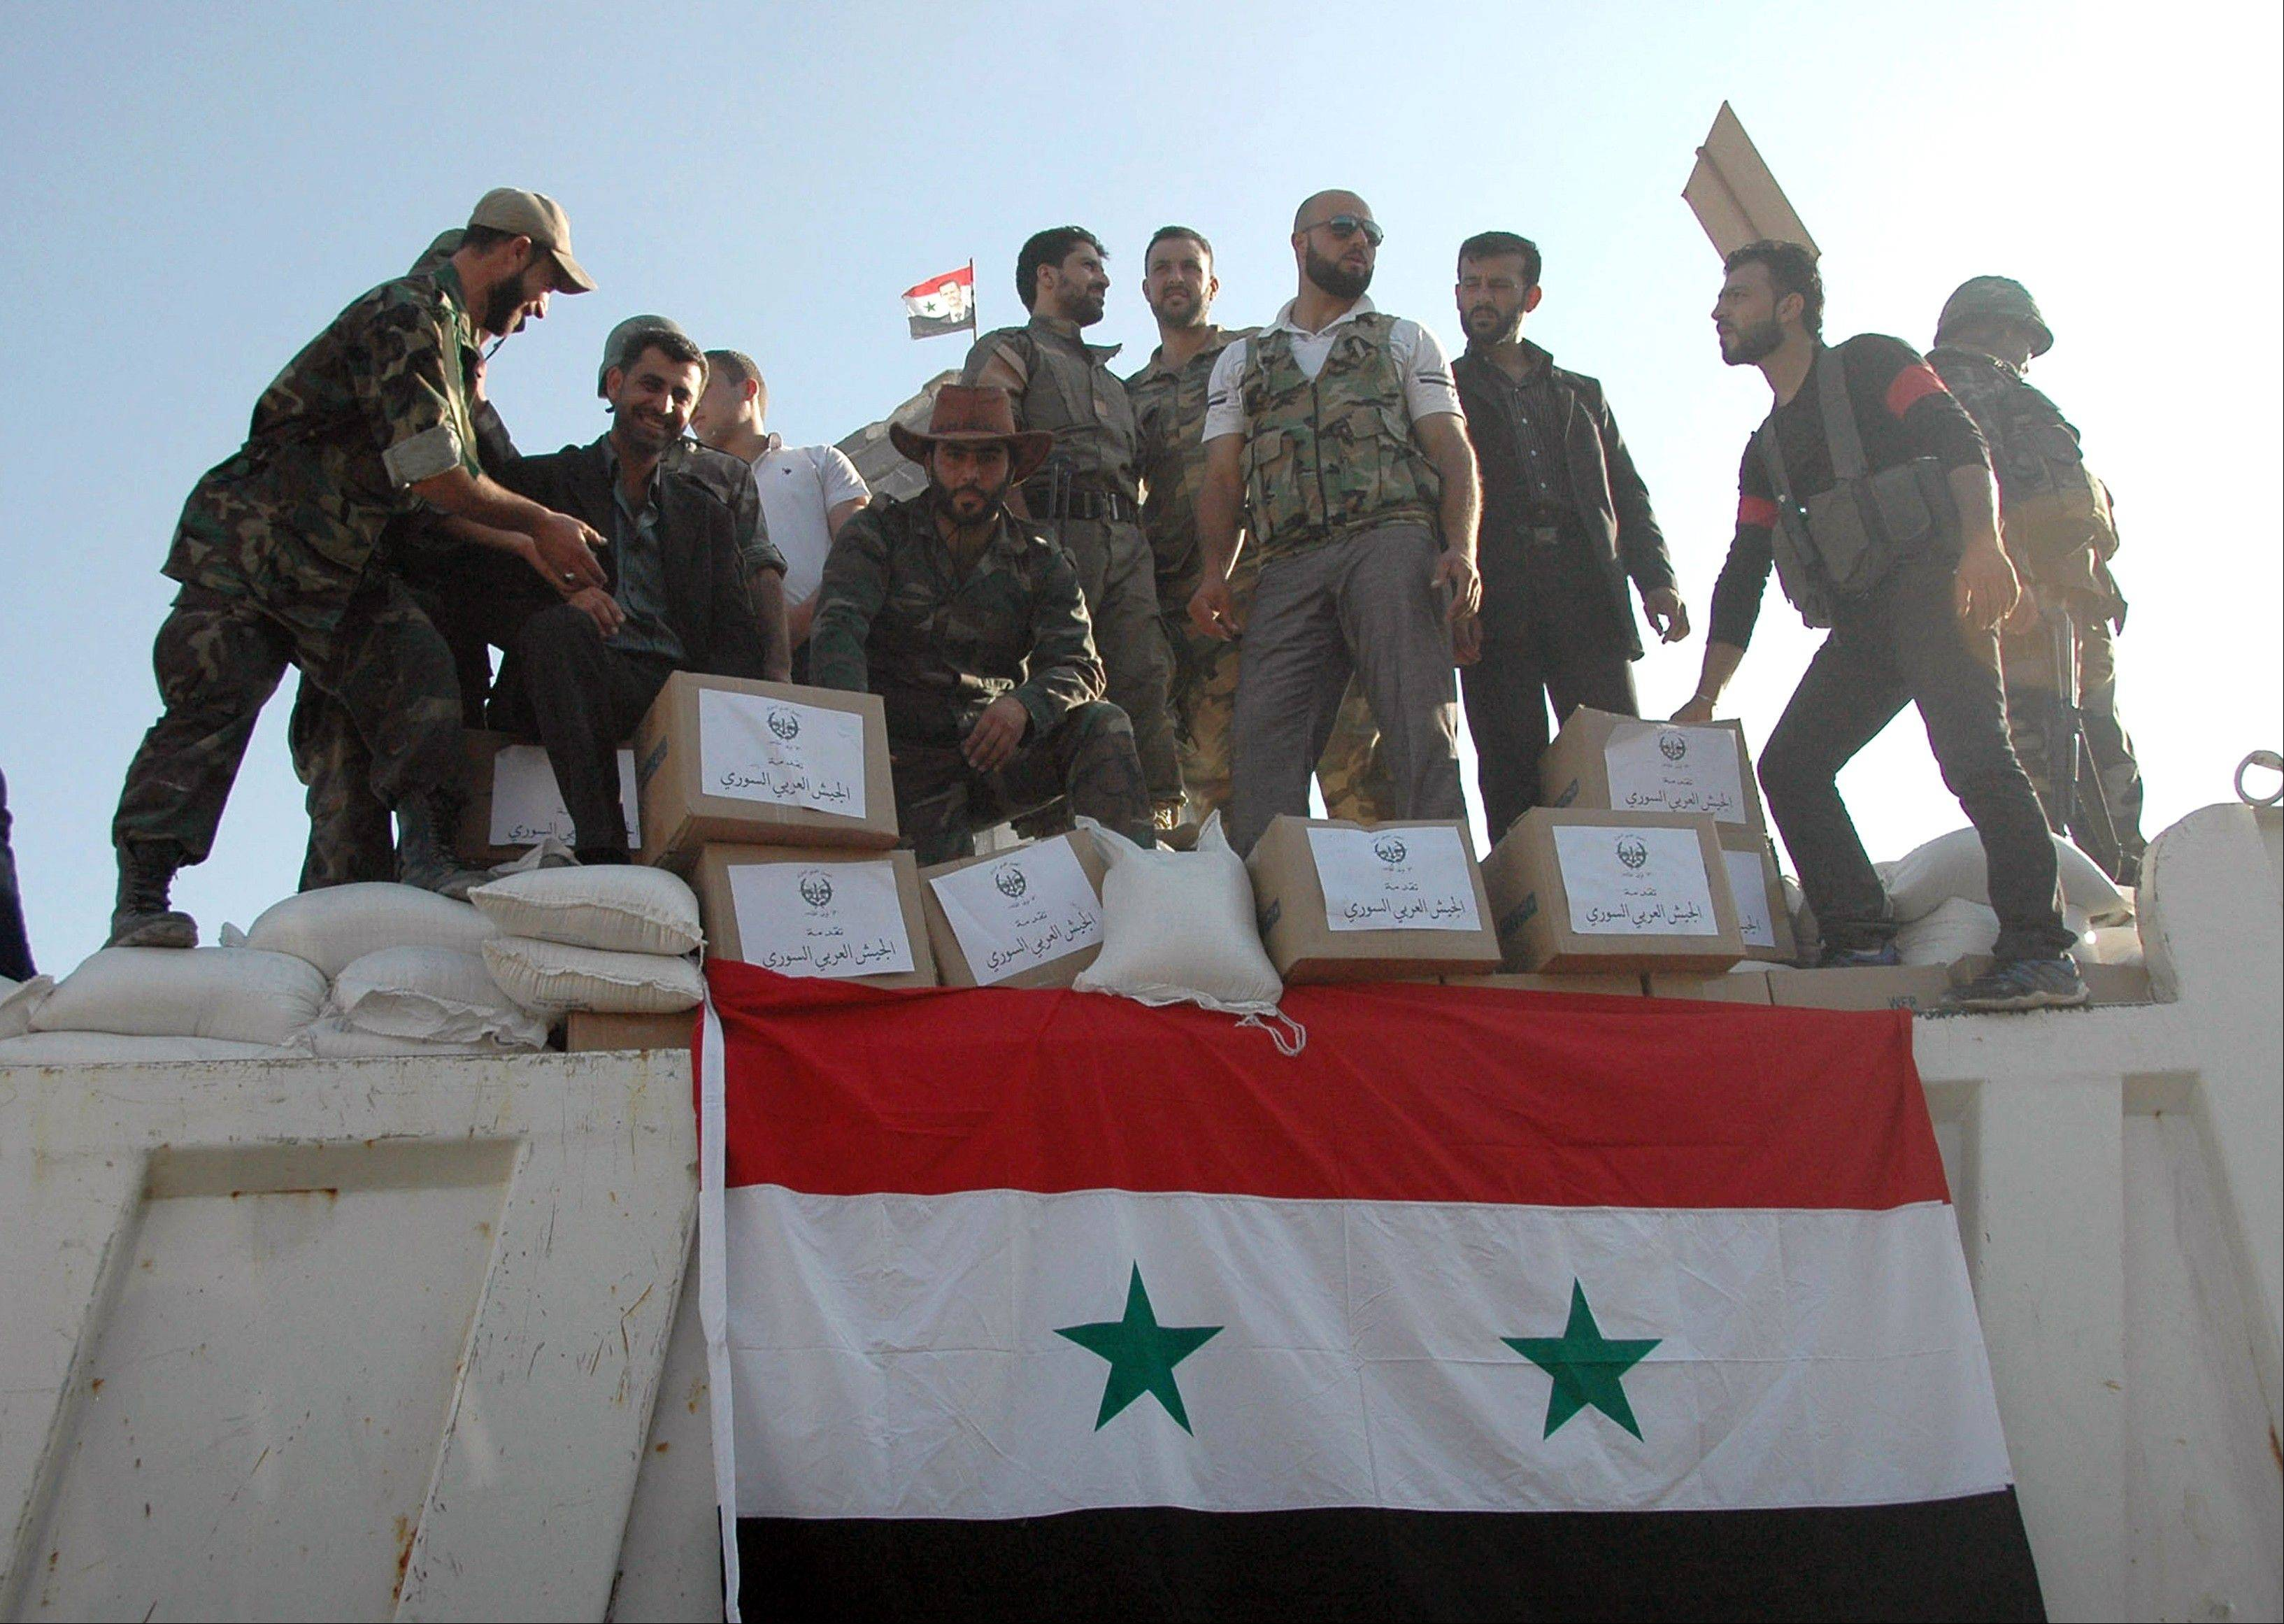 In this photo released Wednesday by the Syrian official news agency SANA, Syrian soldiers loyal to President Bashar Assad stand on a truck full of aid supplies, in Qusair, Syria. Syrian troops and their Lebanese Hezbollah allies captured a strategic border town Wednesday after a grueling three-week battle, dealing a severe blow to rebels and opening the door for President Bashar Assad's regime to seize back the country's central heartland. The regime triumph in Qusair, which Assad's forces had bombarded for months without success, demonstrates the potentially game-changing role of Hezbollah in Syria's civil war.